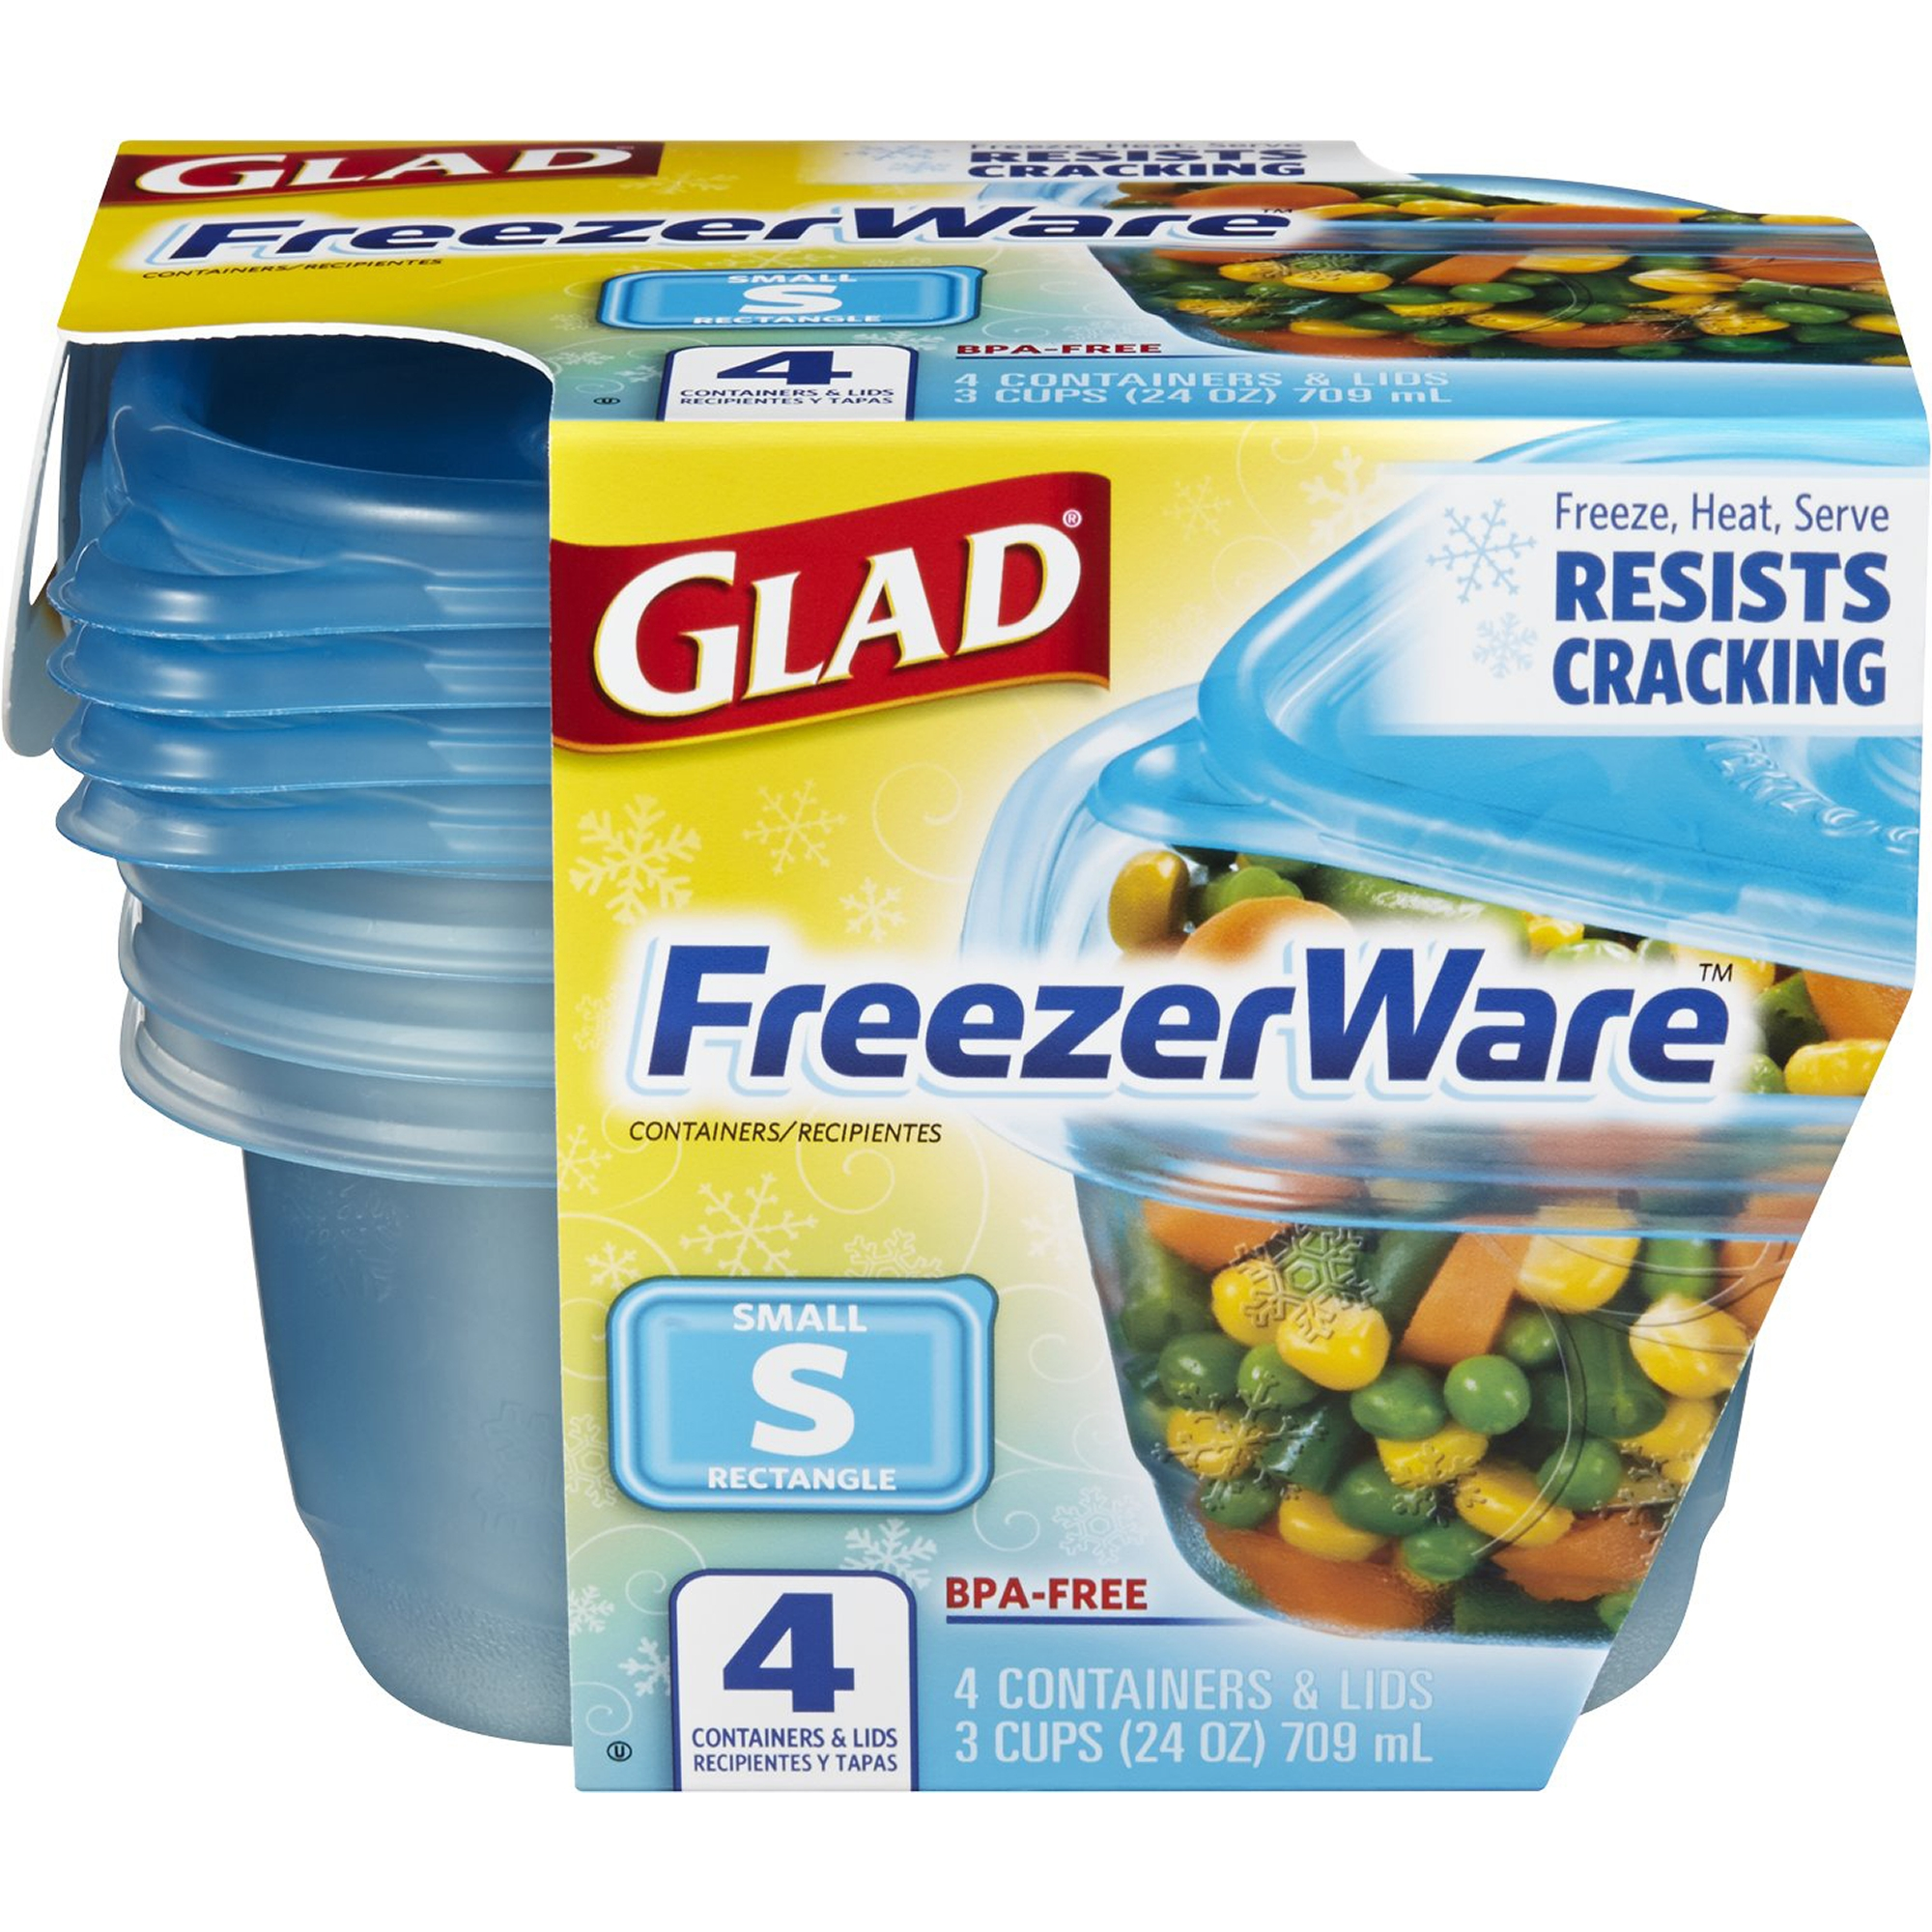 Glad Food Storage Containers, FreezeWare, Small, 24 oz, 4 ct